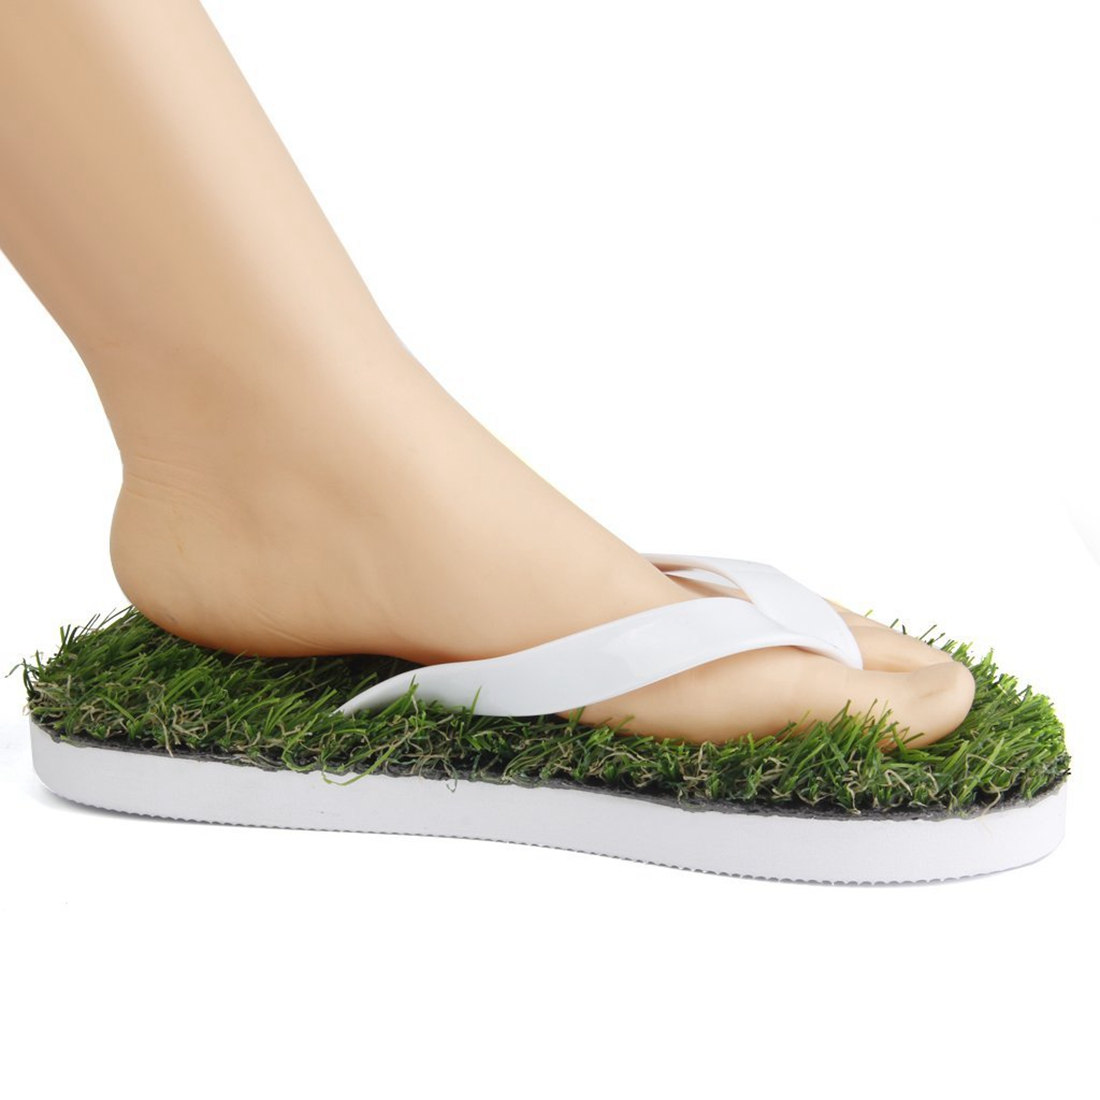 Hot Fashion Men and Women Summer coolness stapler artificial grass flats beach sandals sandals shoe